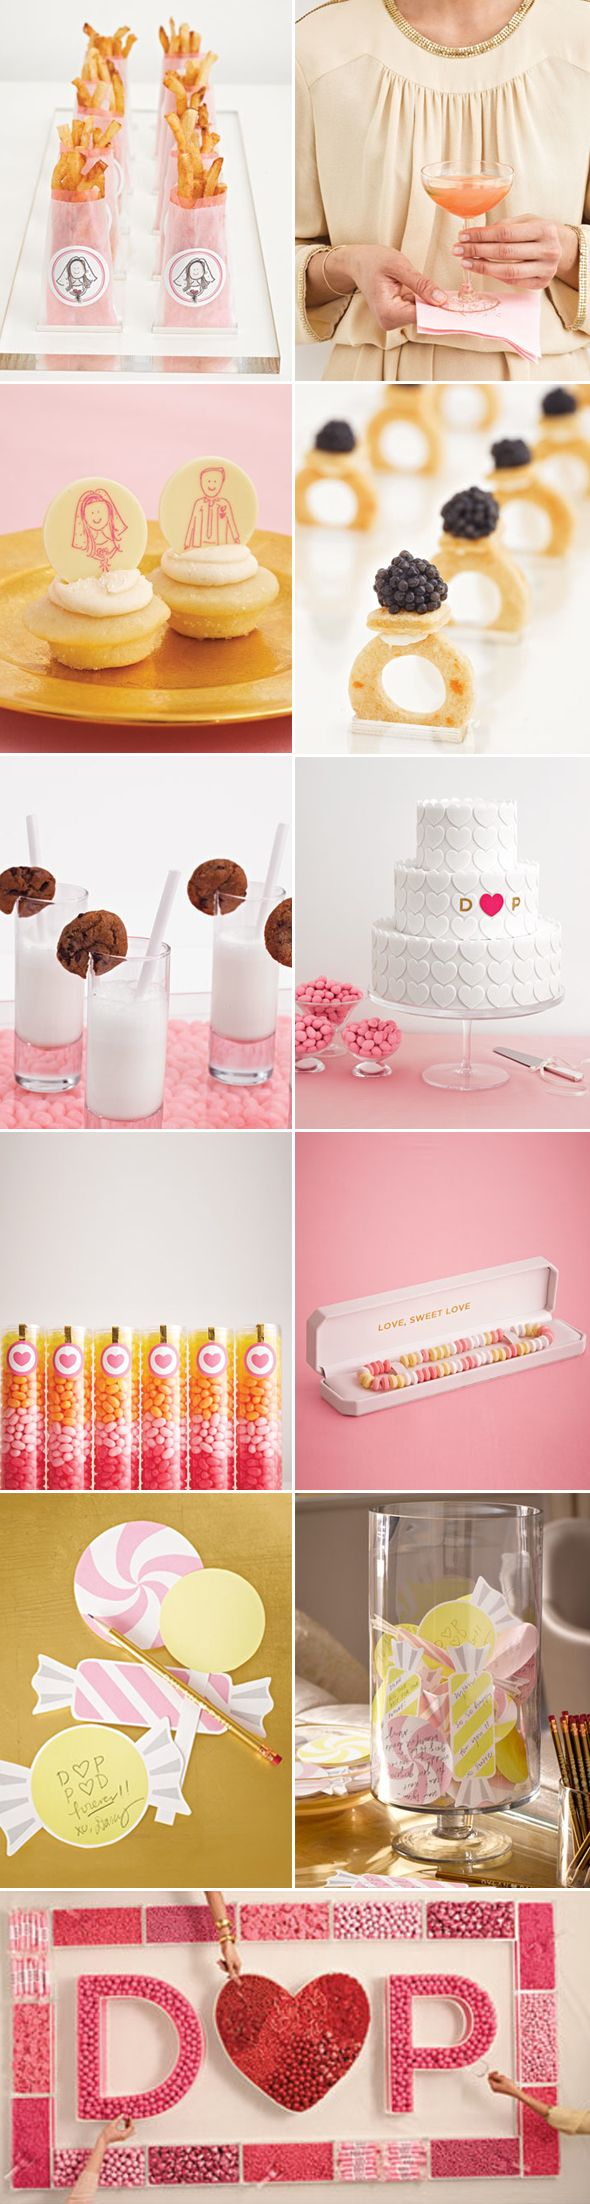 Dylan Lauren Bridal Shower... If only I too owned a candy store